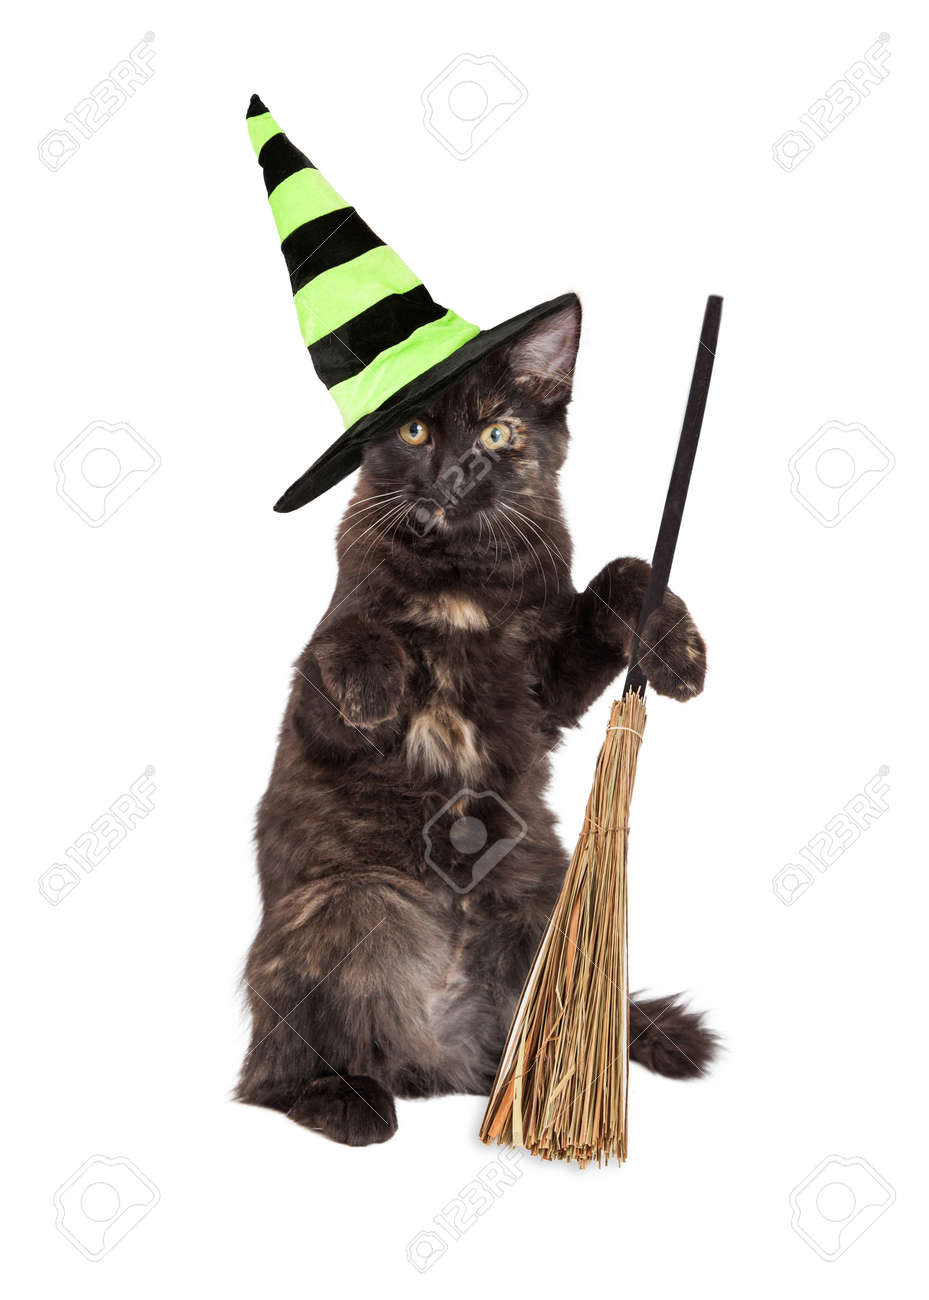 Cute little black kitten wearing a Halloween witch hat and sitting up holding a broom - 44380346